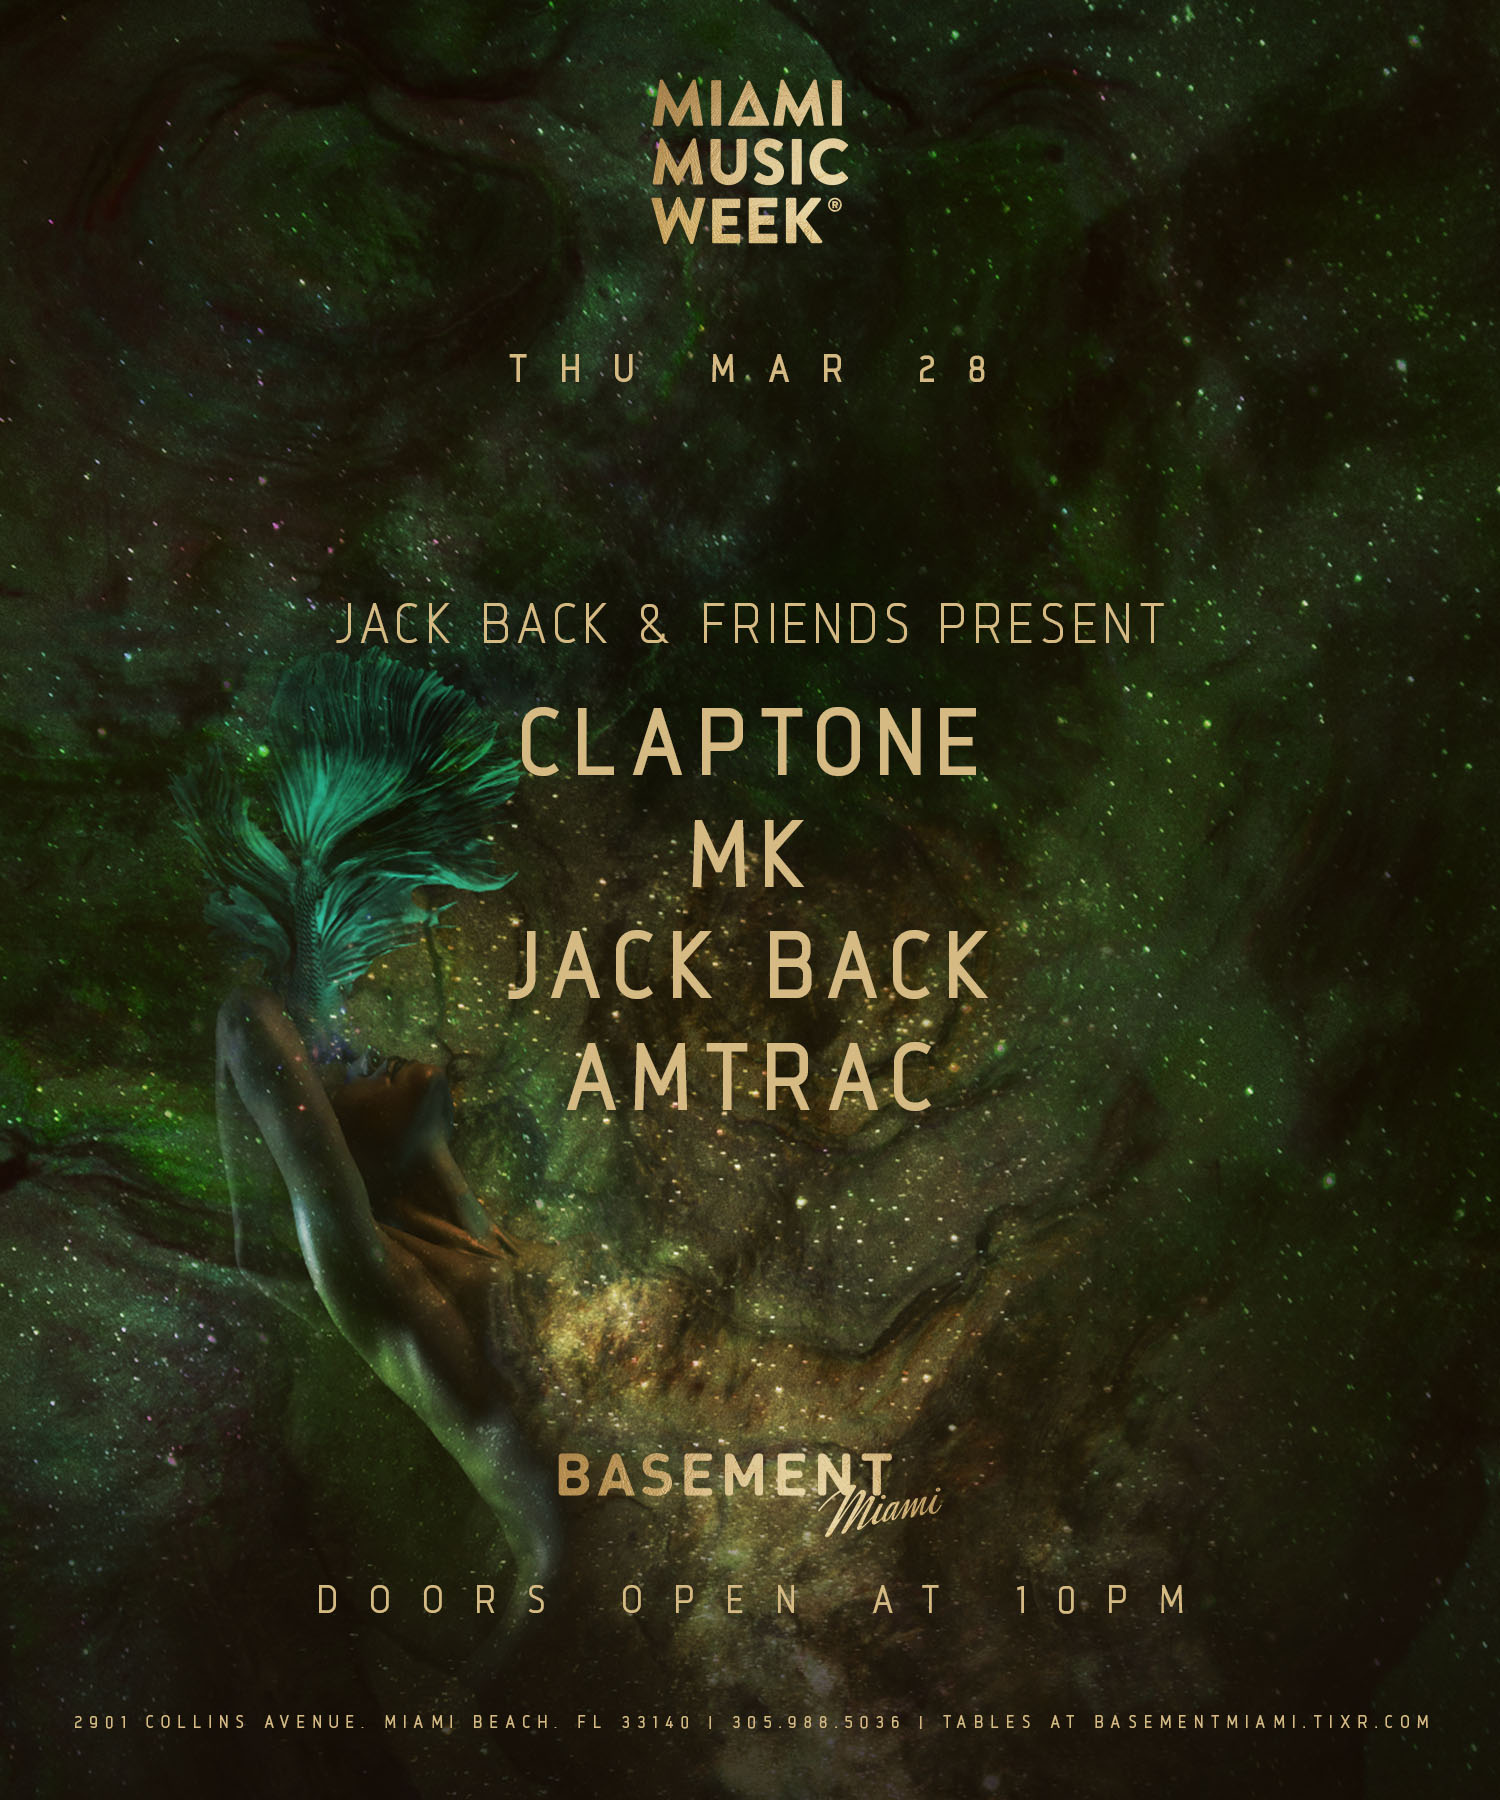 Jack Back & Friends Present: Claptone, MK, Jack Back & Amtrac Image